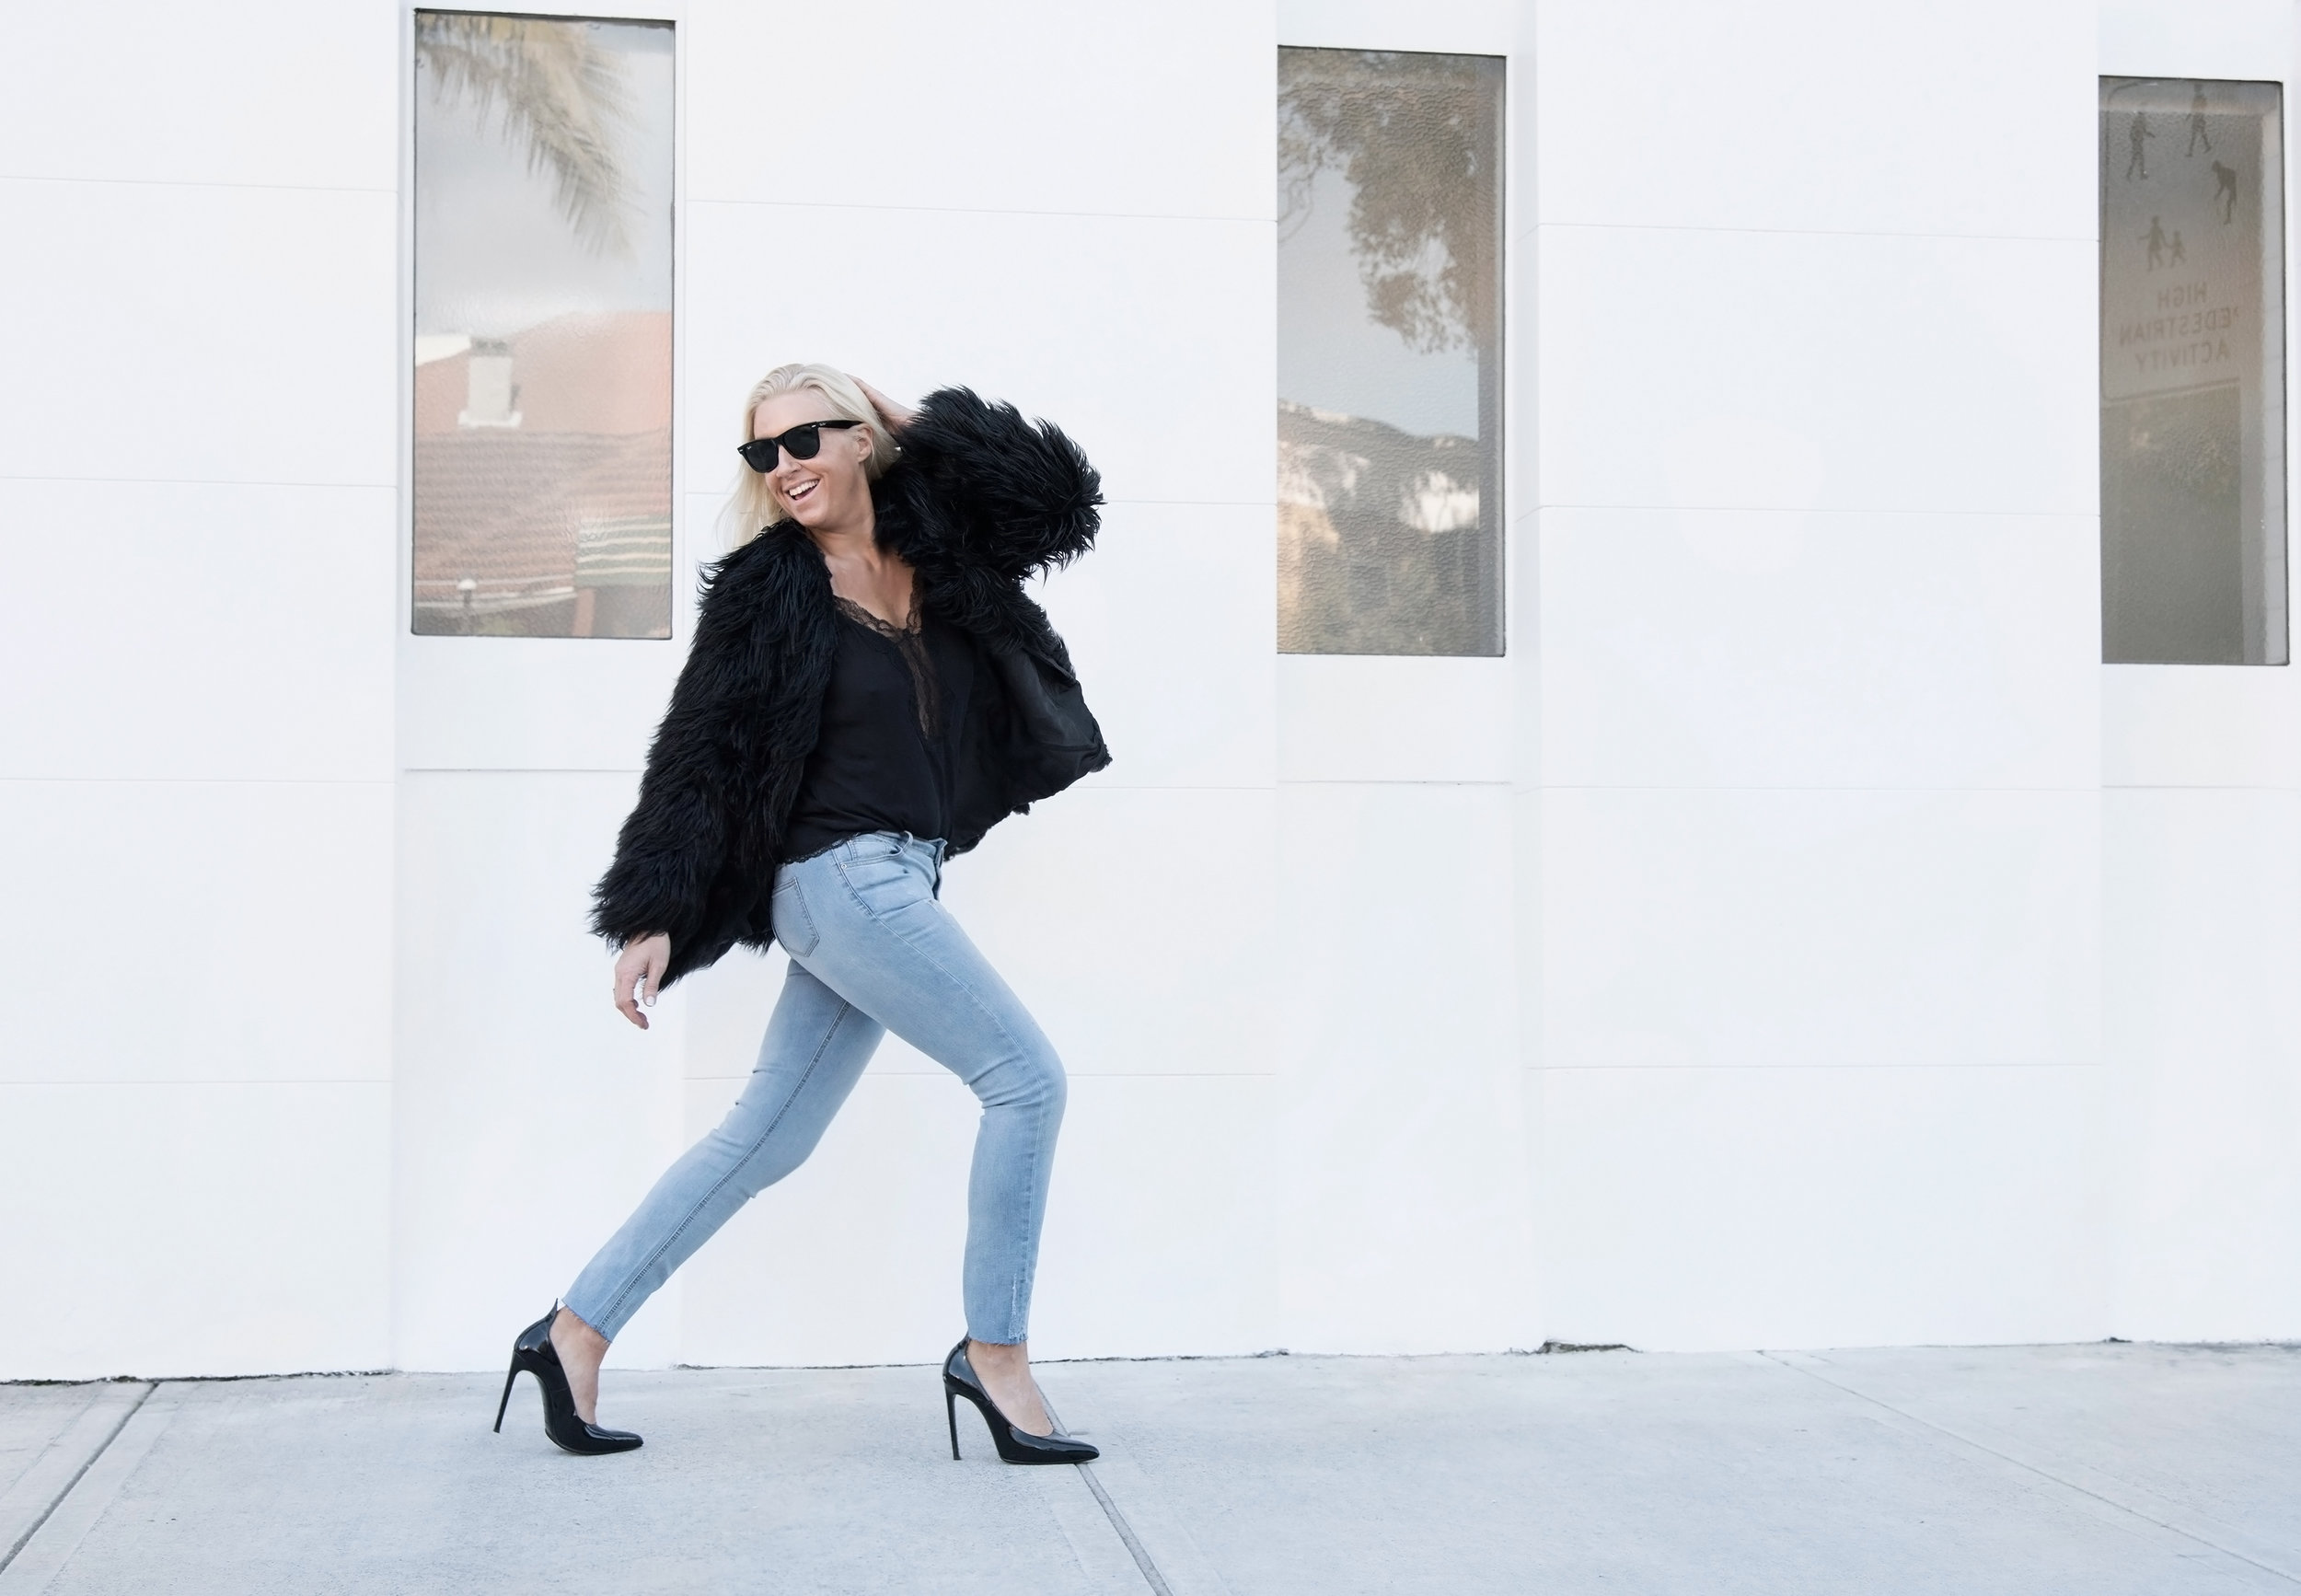 Fashion - Every woman is different and so our my consultations. We customise a service that suits your needs, improves your style confidence and maximises the wardrobe you have. Services include:# At home wardrobe detox and declutter# Re-organise, edit and reimagine your current wardrobe# Shopping for wardrobe basics or special events# How to dress to flatter your figure